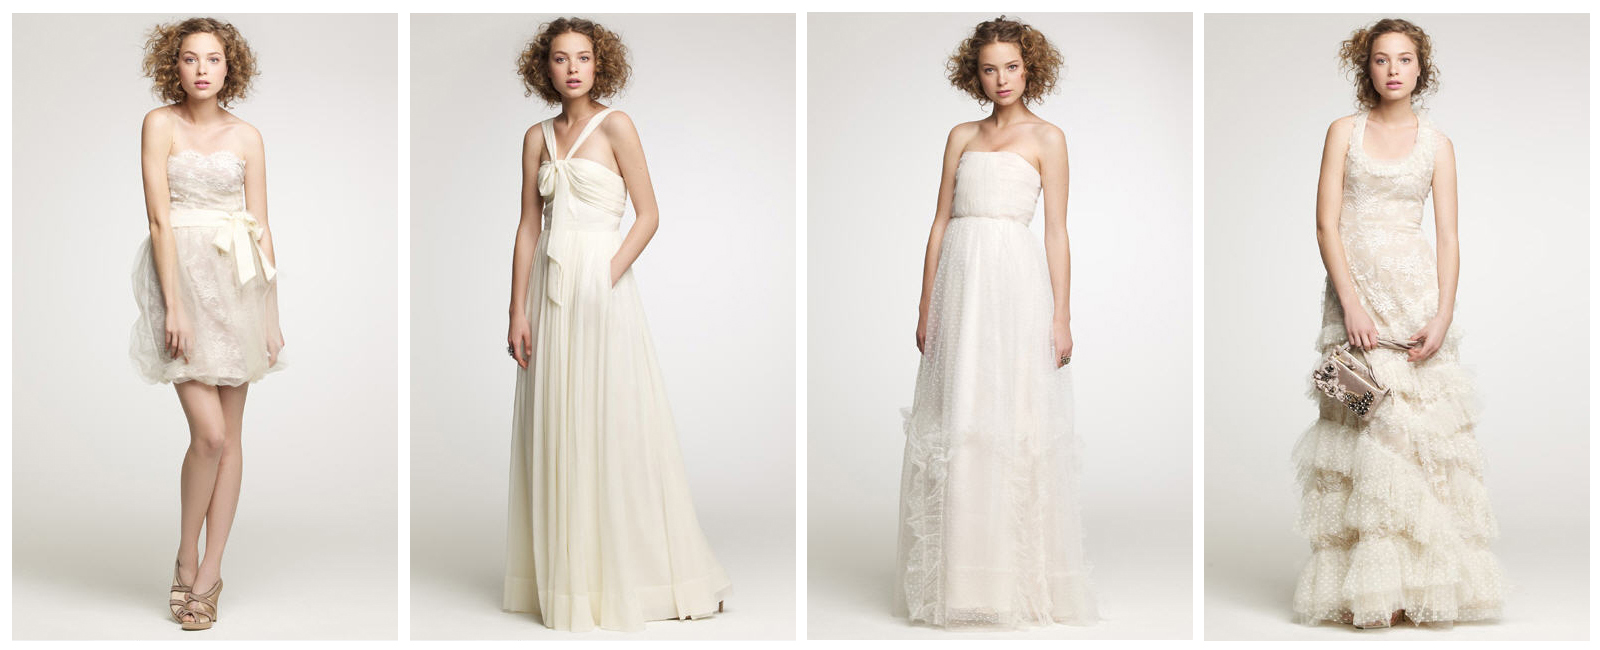 wear to a wedding, dresses